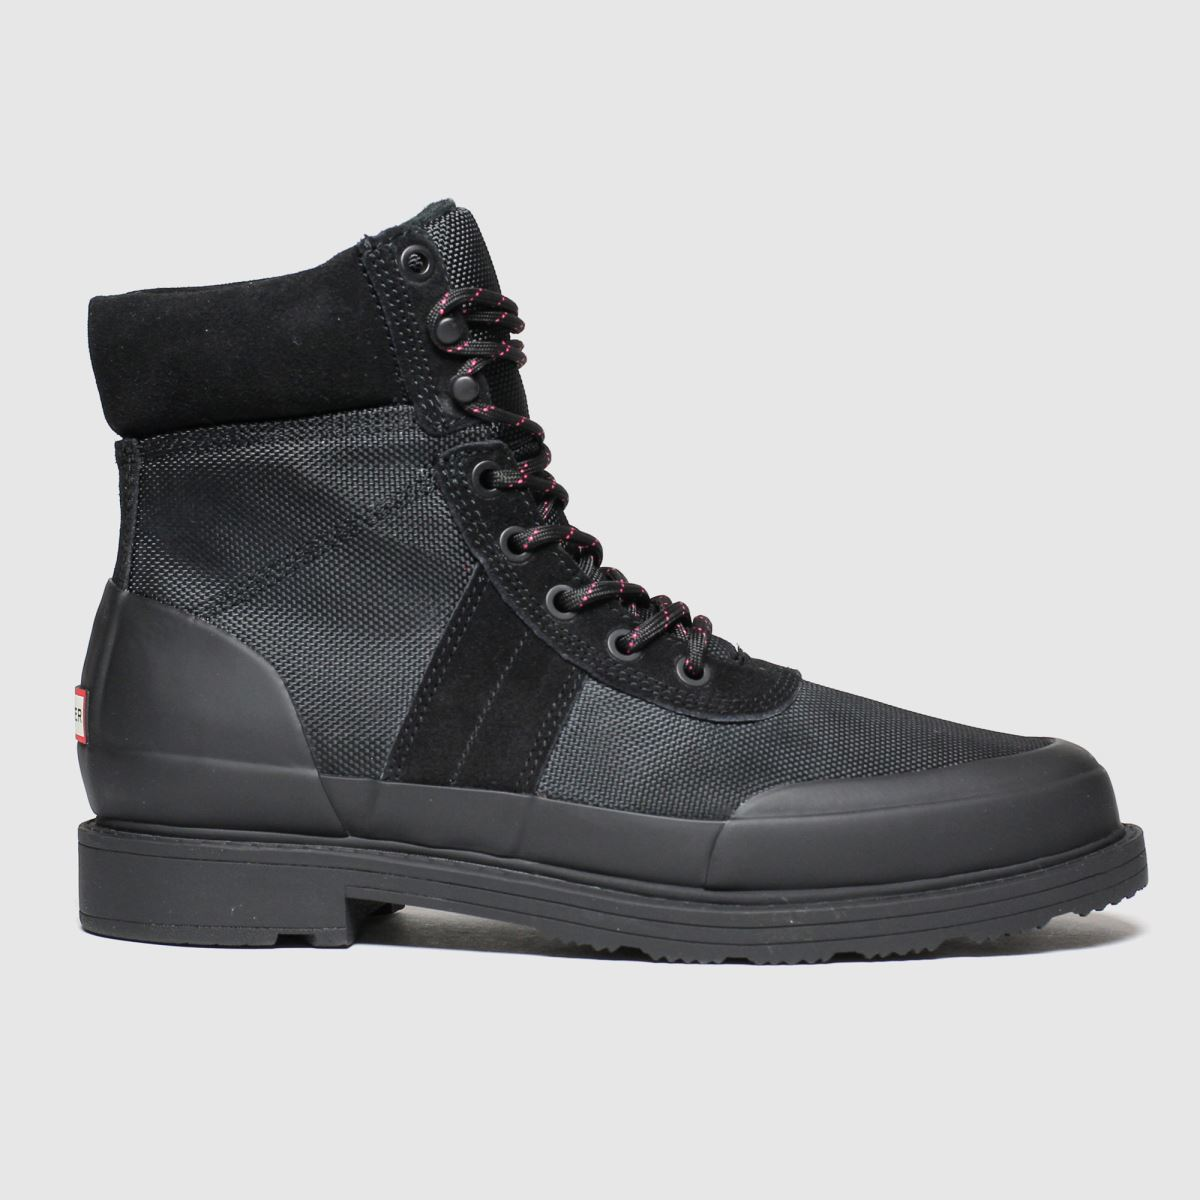 Hunter Black Original Commando Boots